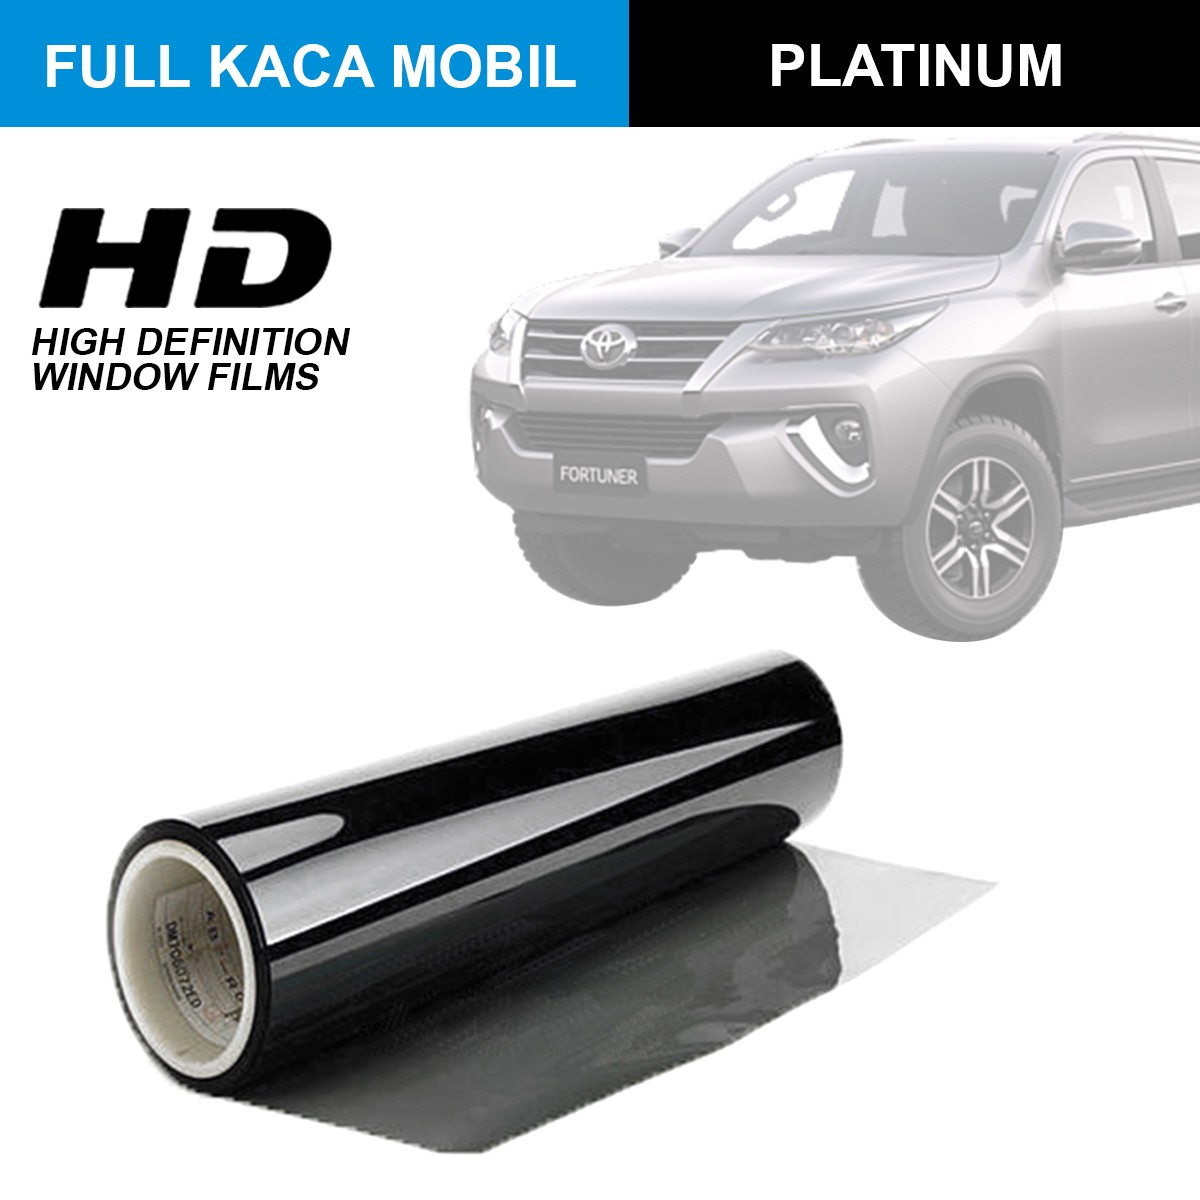 KACA FILM HIGH DEFINITION PLATINUM - (LARGE CAR) FULL KACA